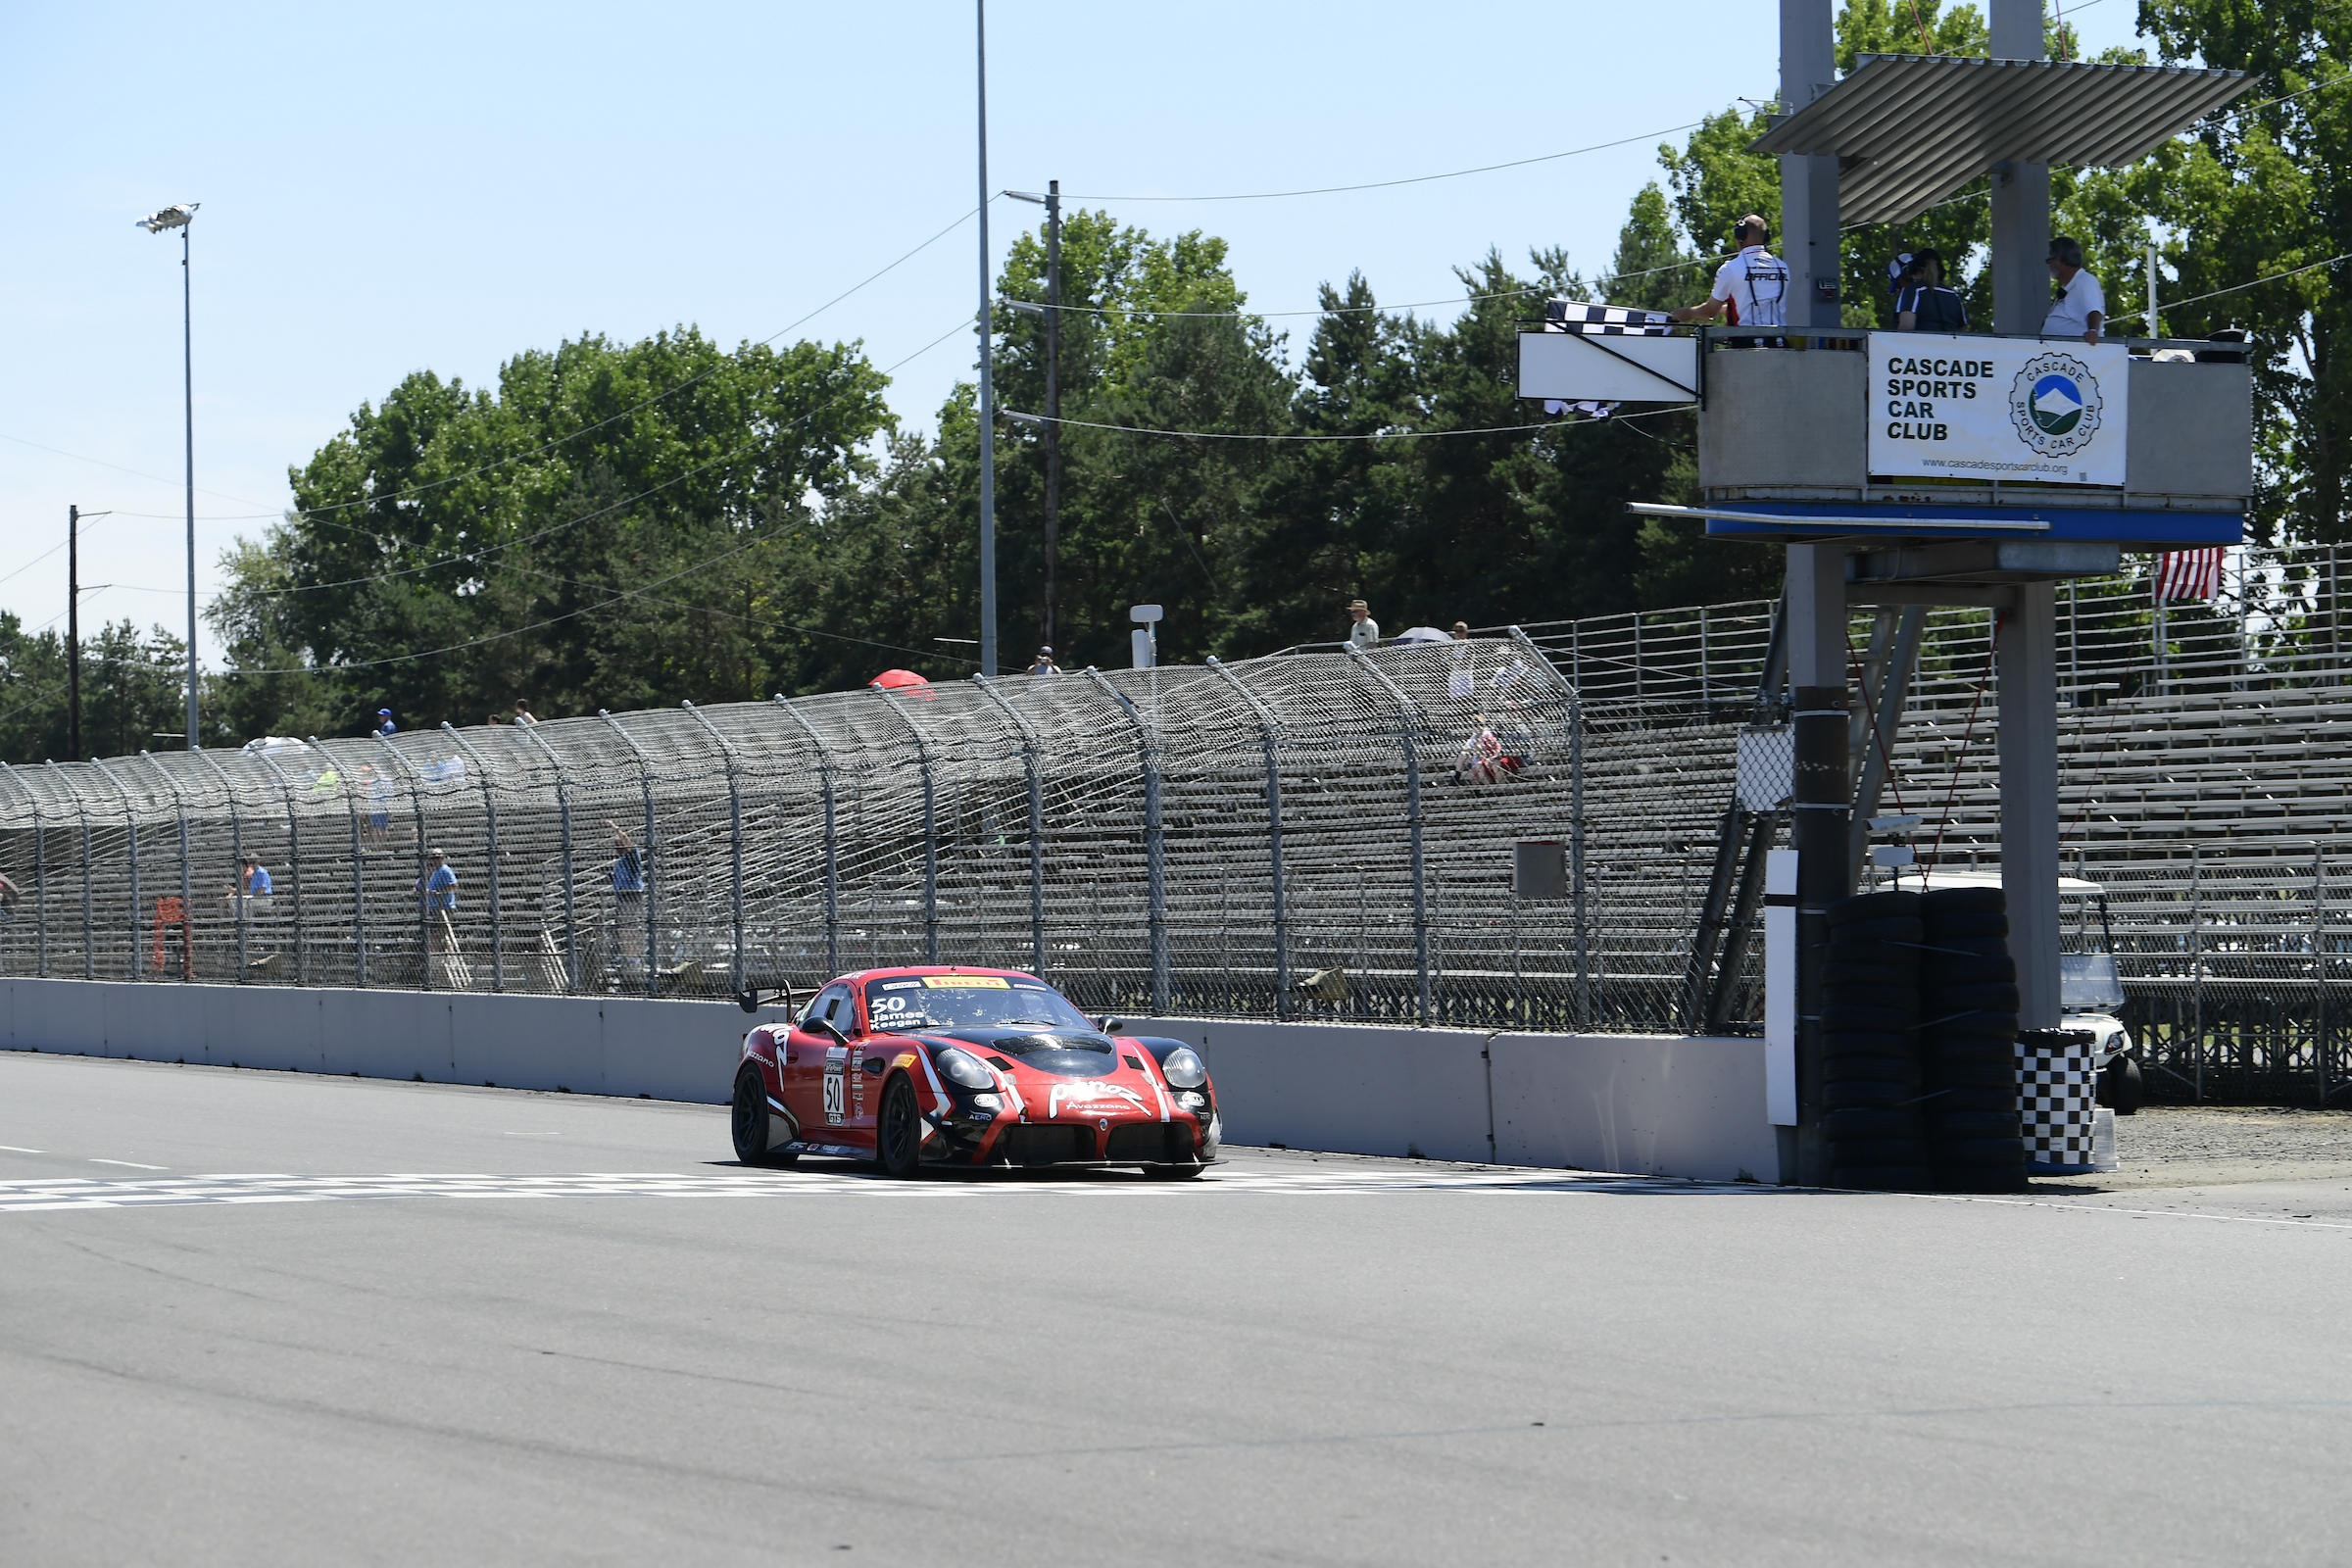 A Winning Weekend For Team Panoz Racing